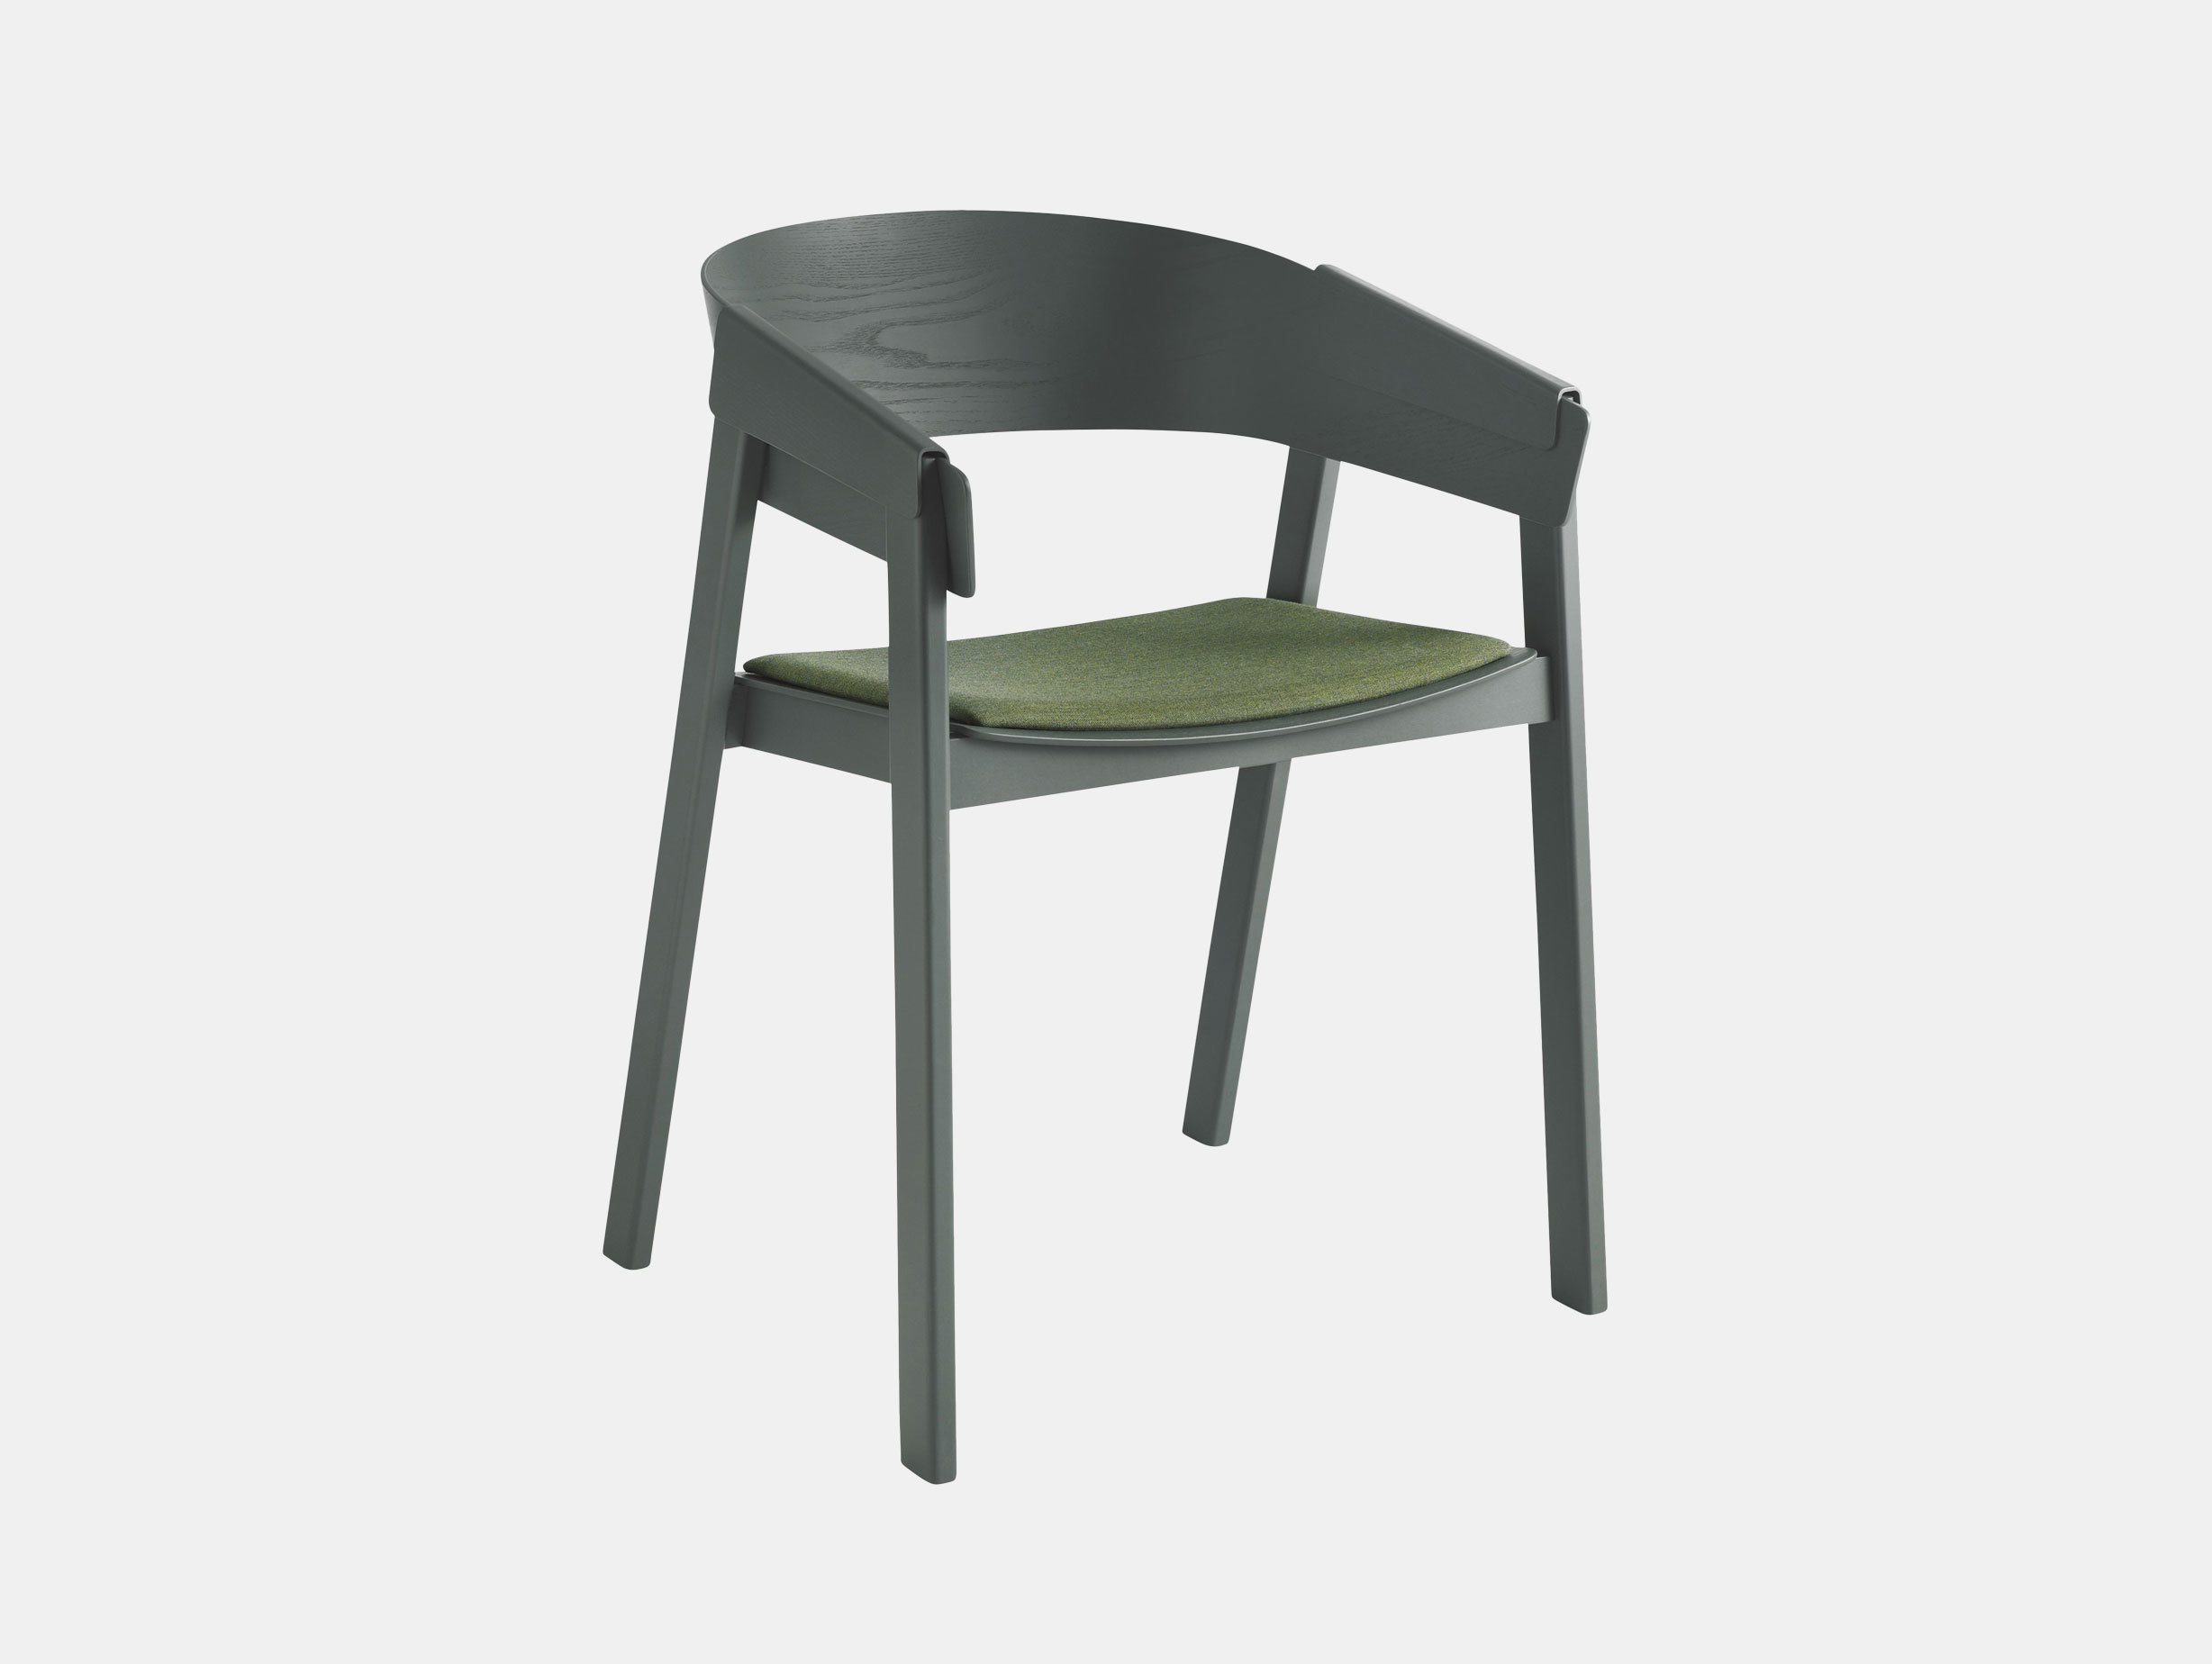 Cover Upholstered Chair image 3